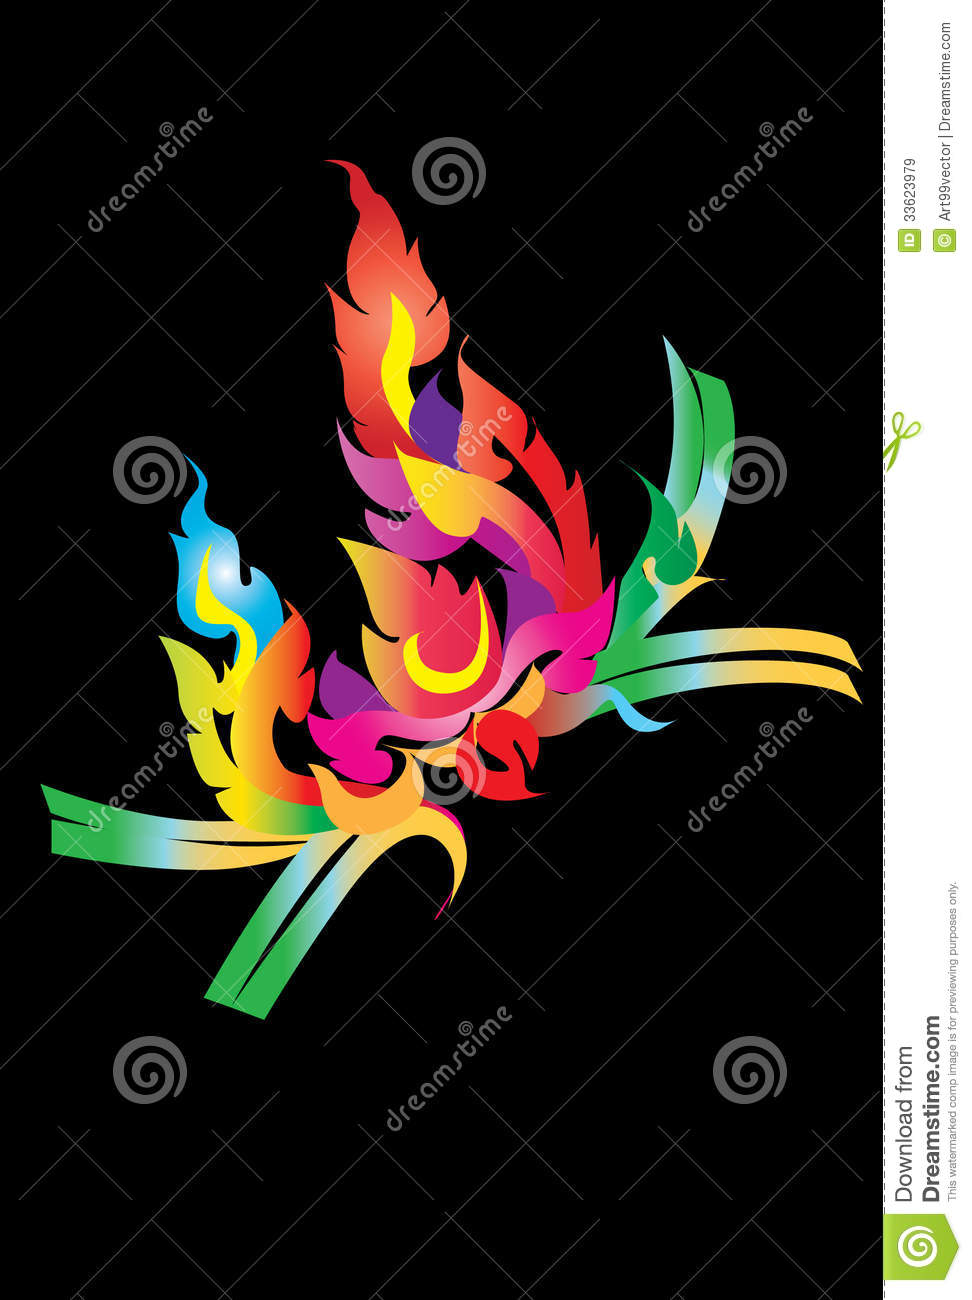 Thai Design Wallpaper : Line applictions royalty free stock images image